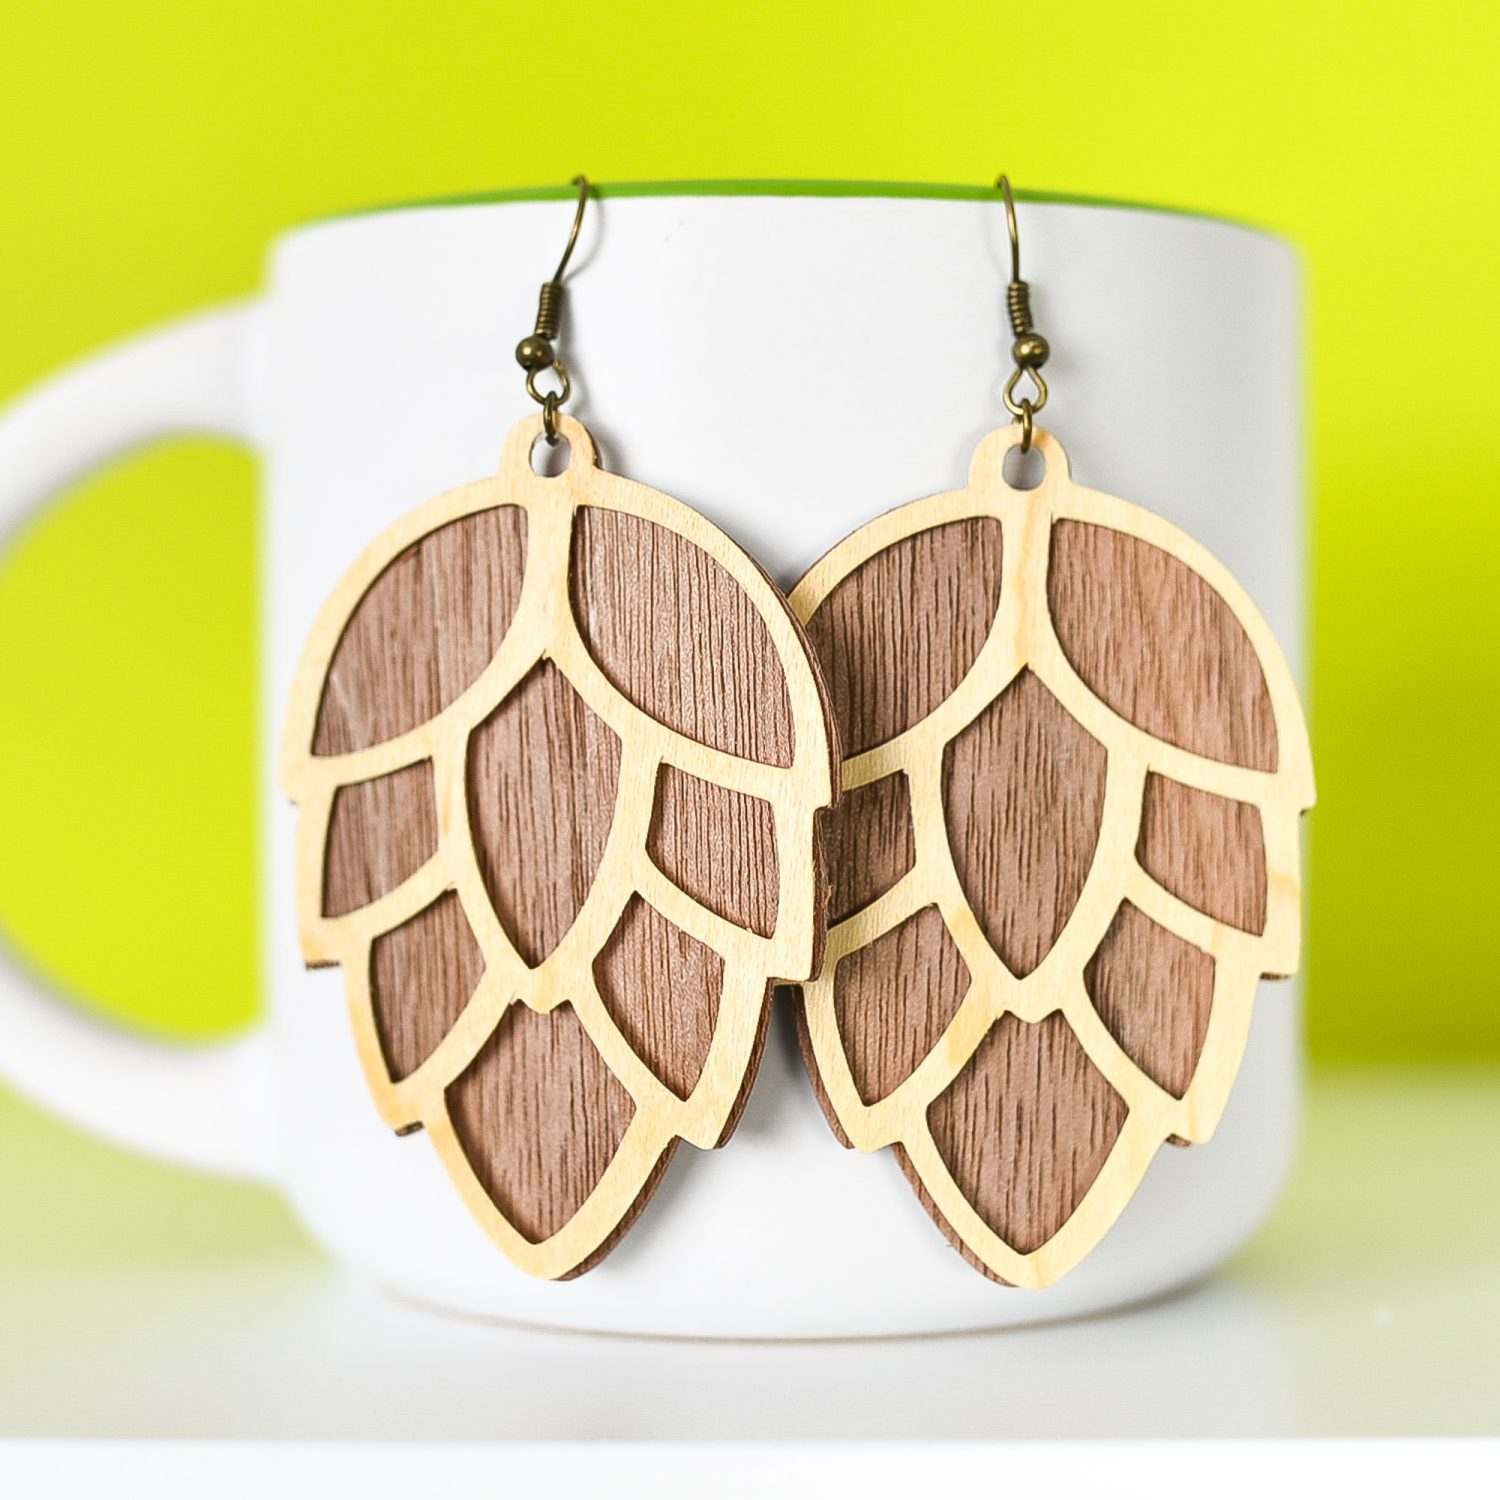 Close up of finished pinecone earrings hanging from a mug with a green background.